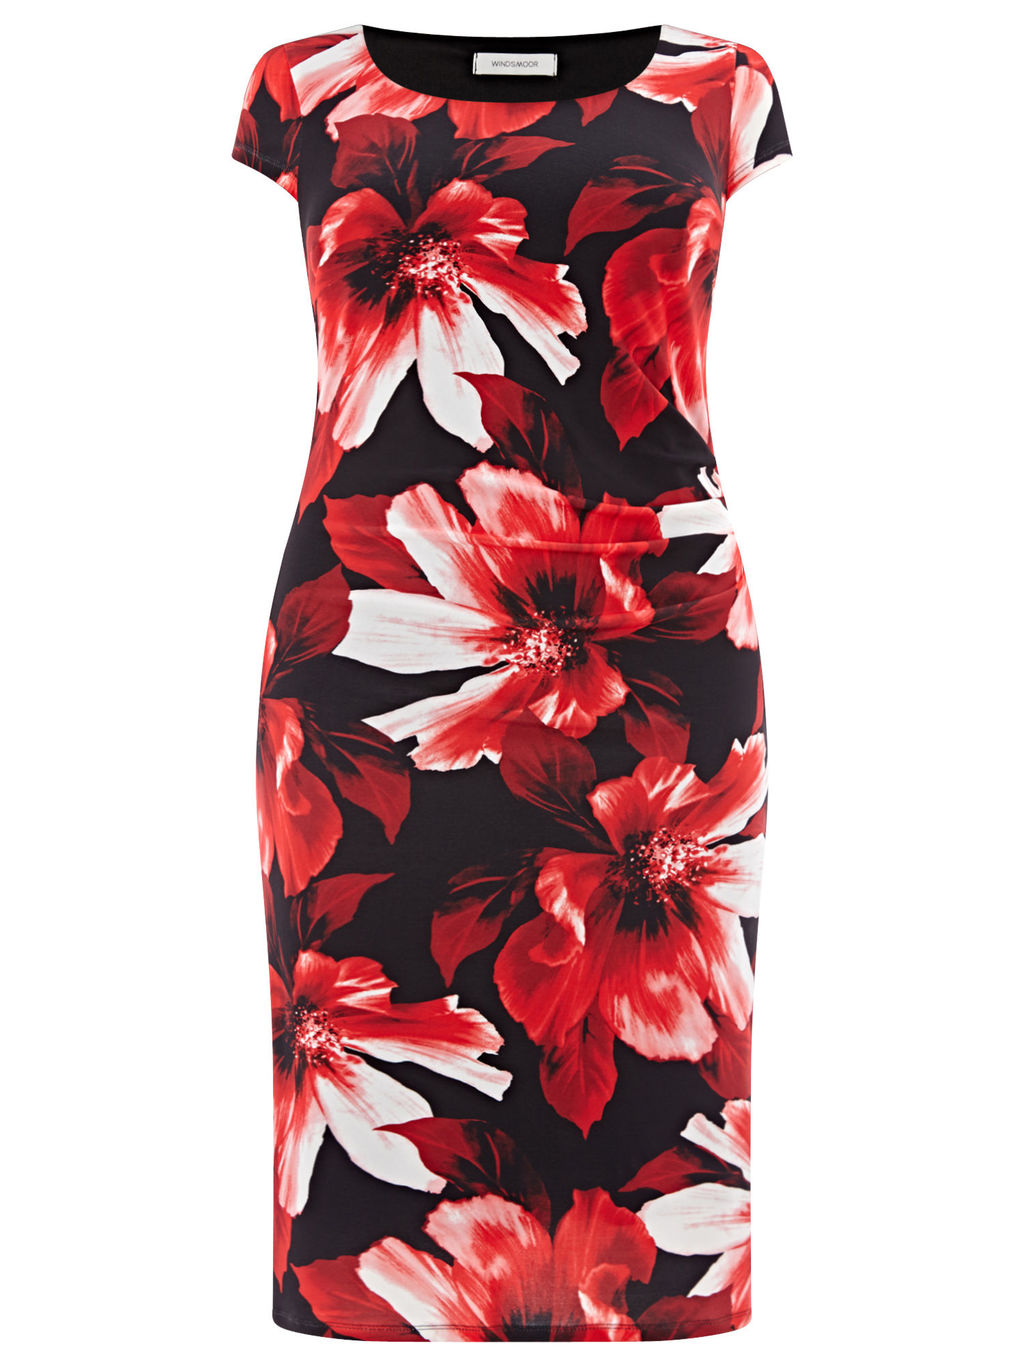 Floral Print Dress, Red/Black - style: shift; neckline: round neck; sleeve style: capped; fit: tailored/fitted; predominant colour: true red; secondary colour: black; length: on the knee; fibres: polyester/polyamide - stretch; occasions: occasion; sleeve length: short sleeve; pattern type: fabric; pattern size: big & busy; pattern: florals; texture group: jersey - stretchy/drapey; season: a/w 2015